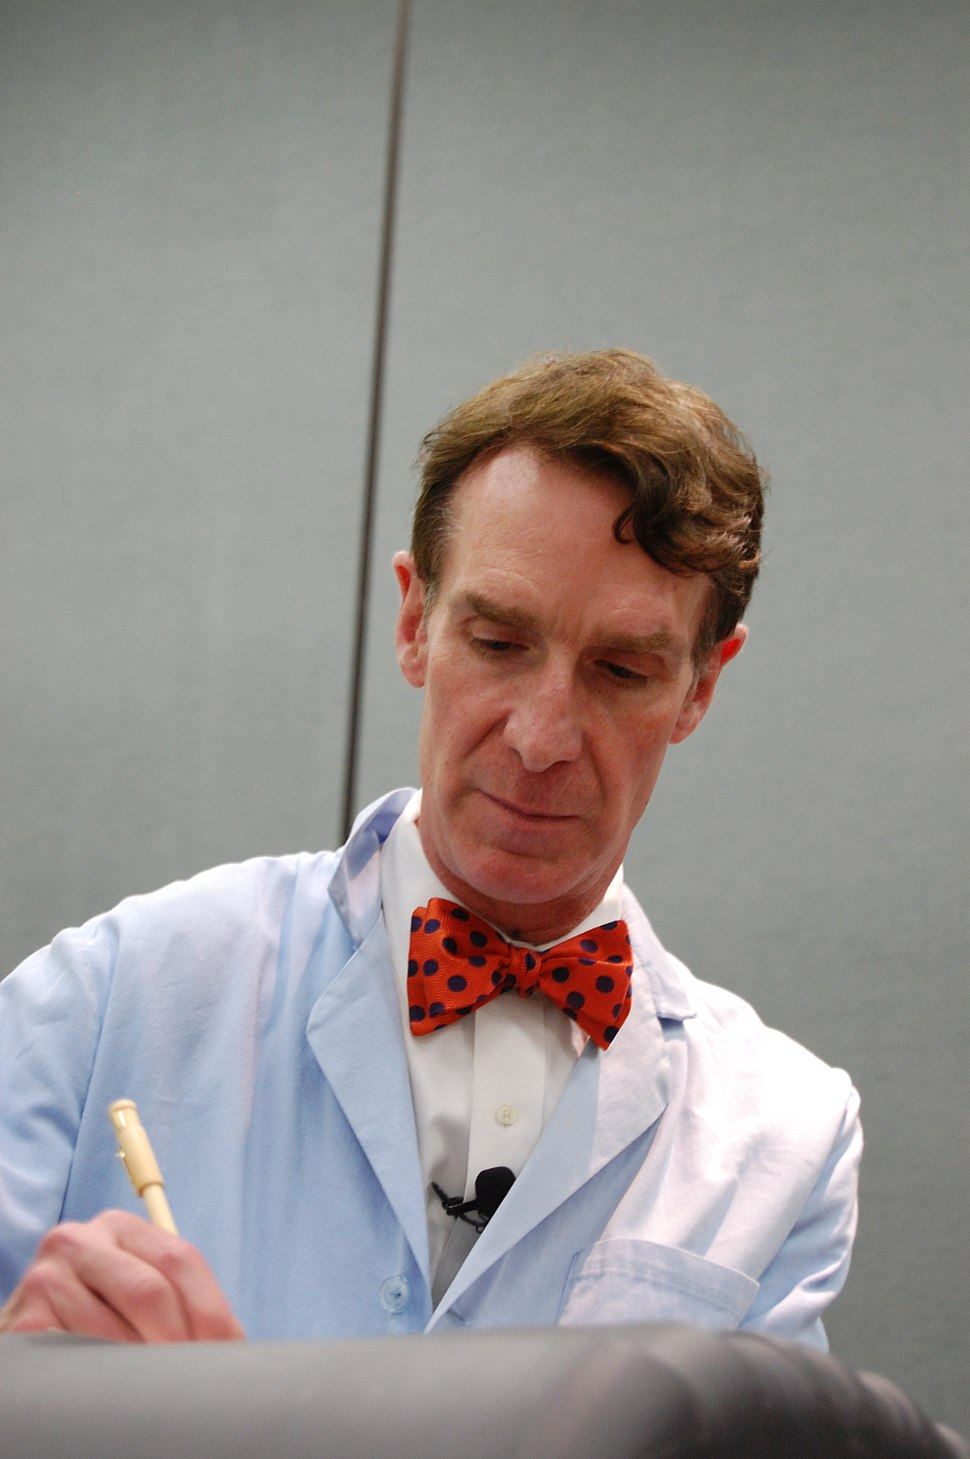 Bill Nye with trademark blue lab coat and bowtie